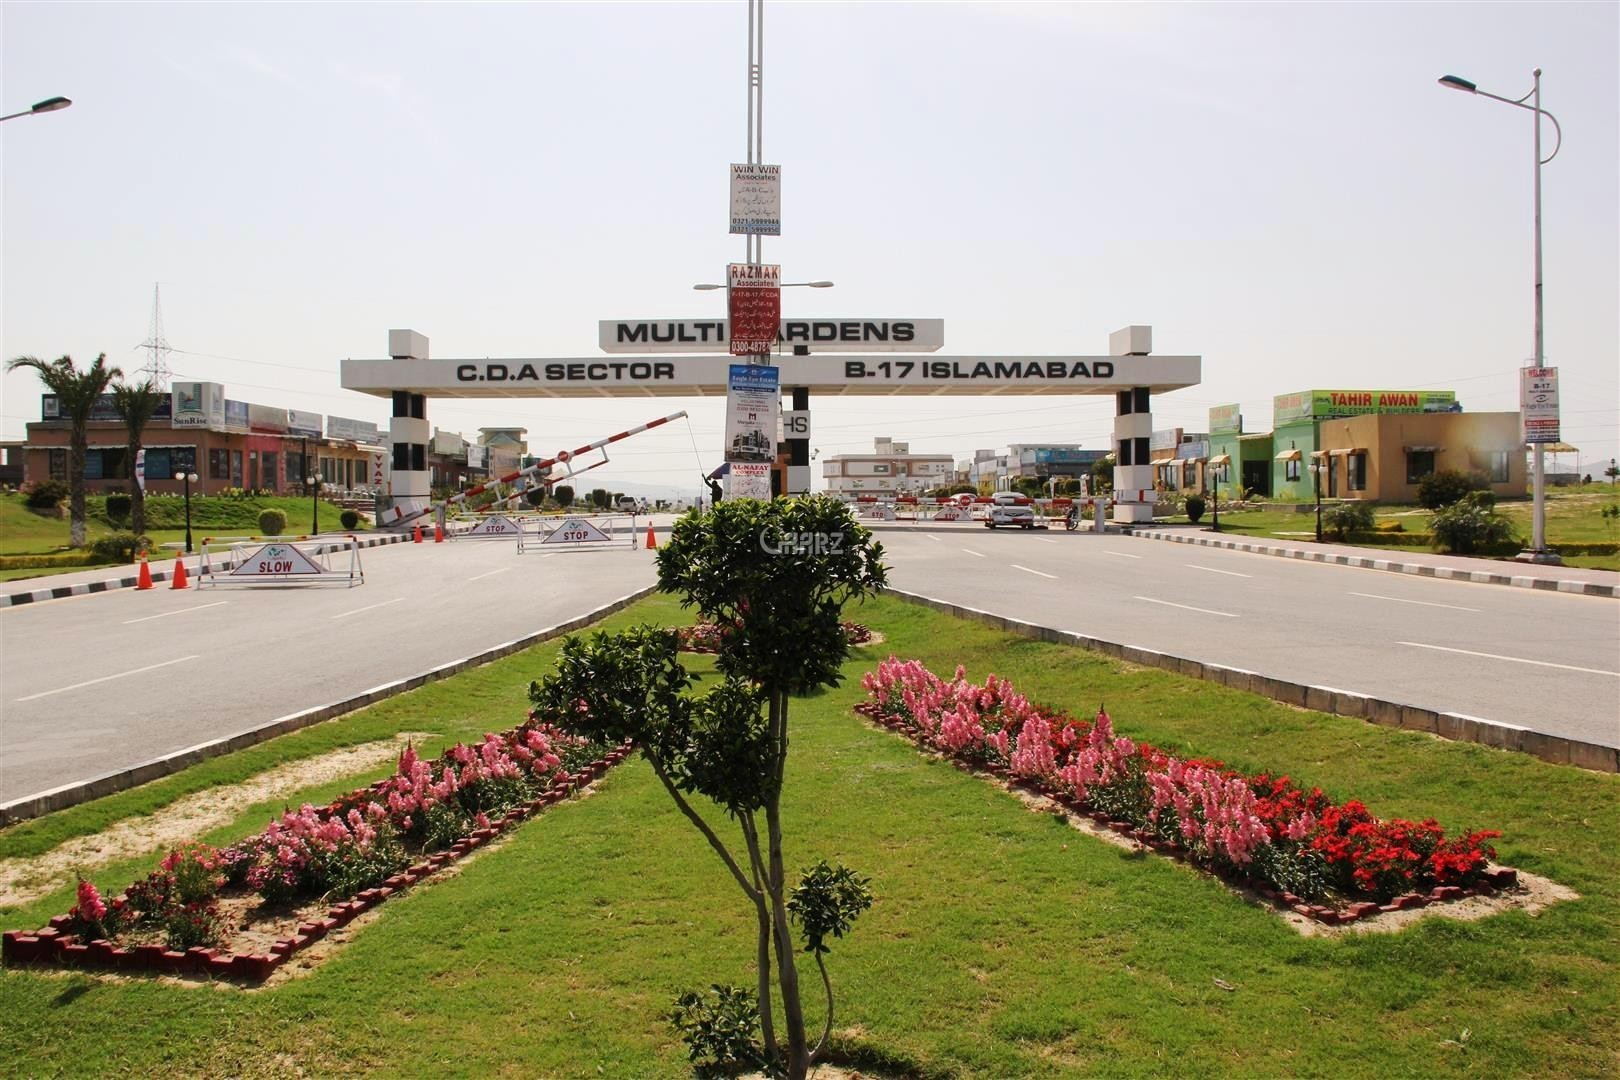 1 Kanal Corner Plot in B-17 Islamabad for Sale - Ready for Construction